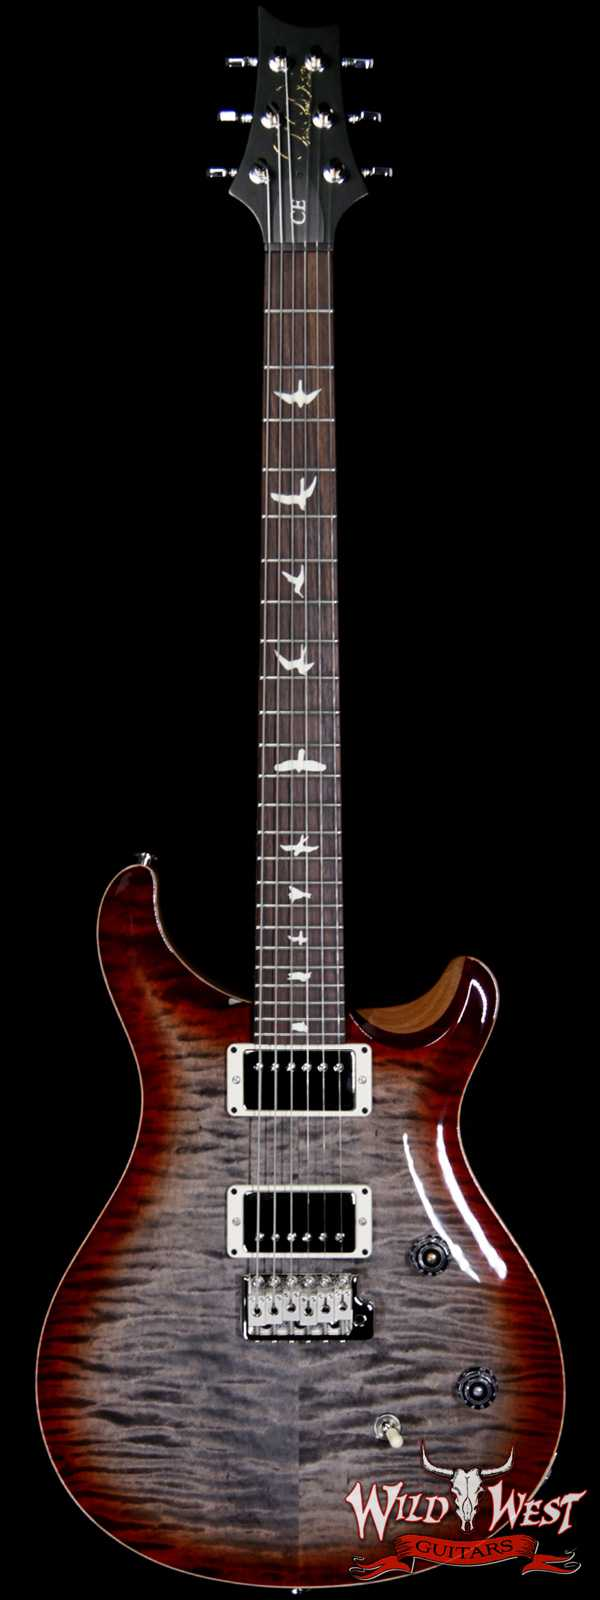 PRS WWG Special Run CE 24 57/08 Pickups Painted Black Neck Faded Gray Black Cherry Burst 286750